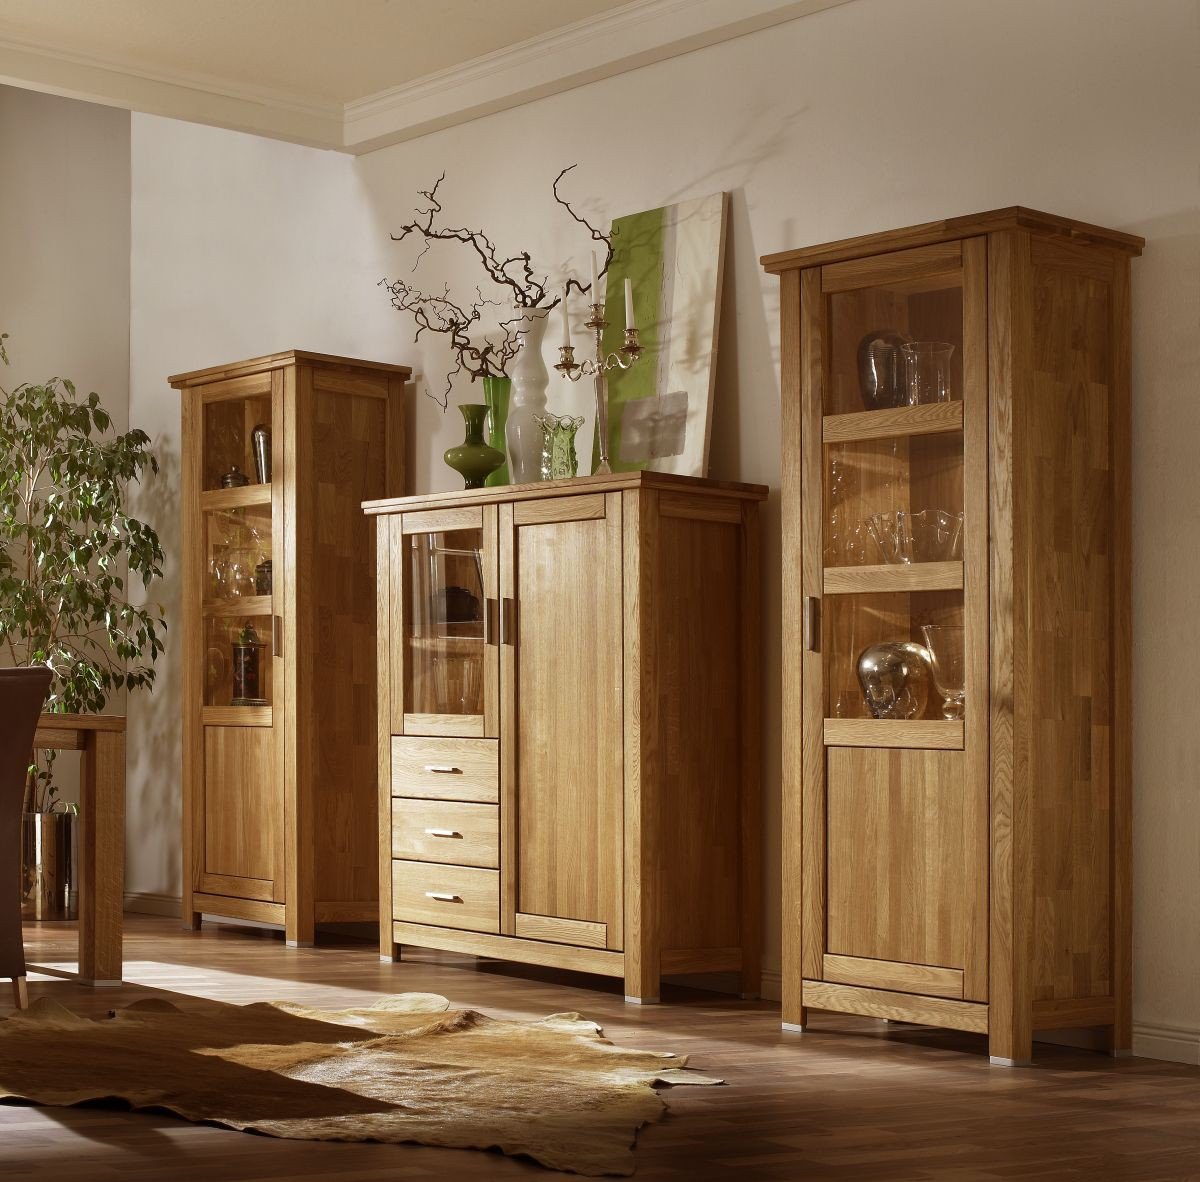 anbauwand eiche massiv ge lt porto neu eingetroffen. Black Bedroom Furniture Sets. Home Design Ideas